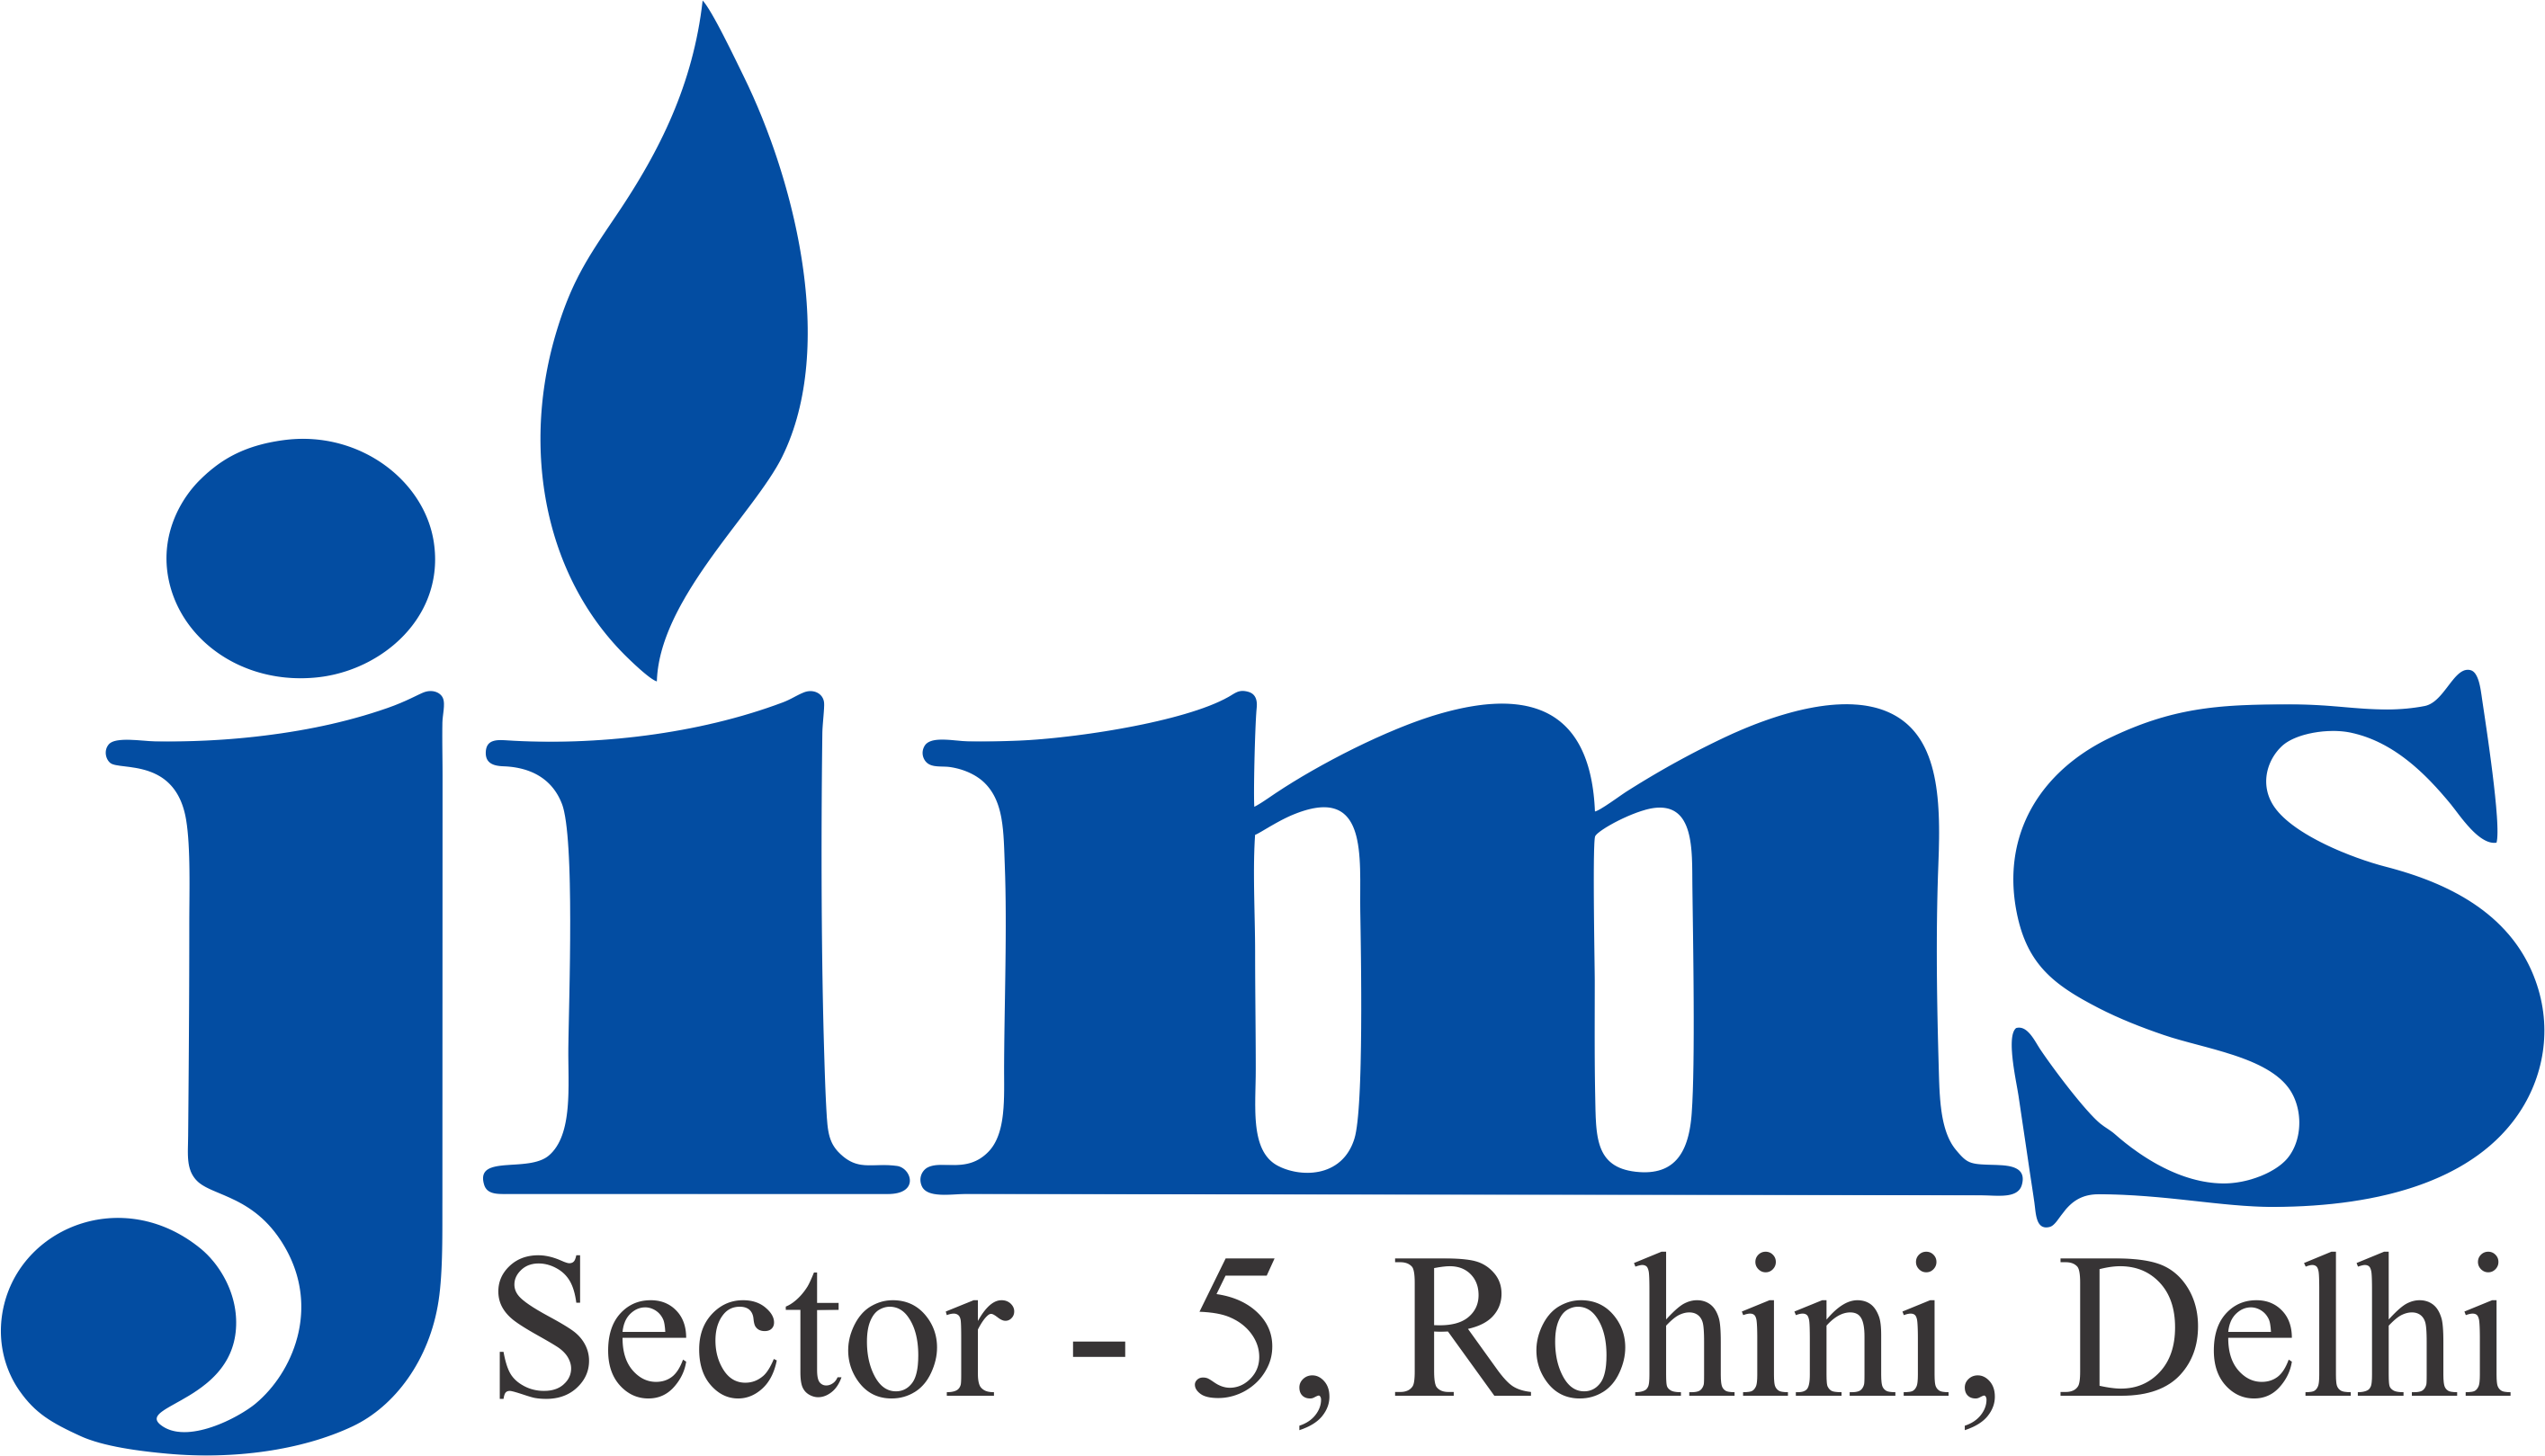 Jagan Institute of Management Studies RohiniTo get Admission MBA PGDM Universities